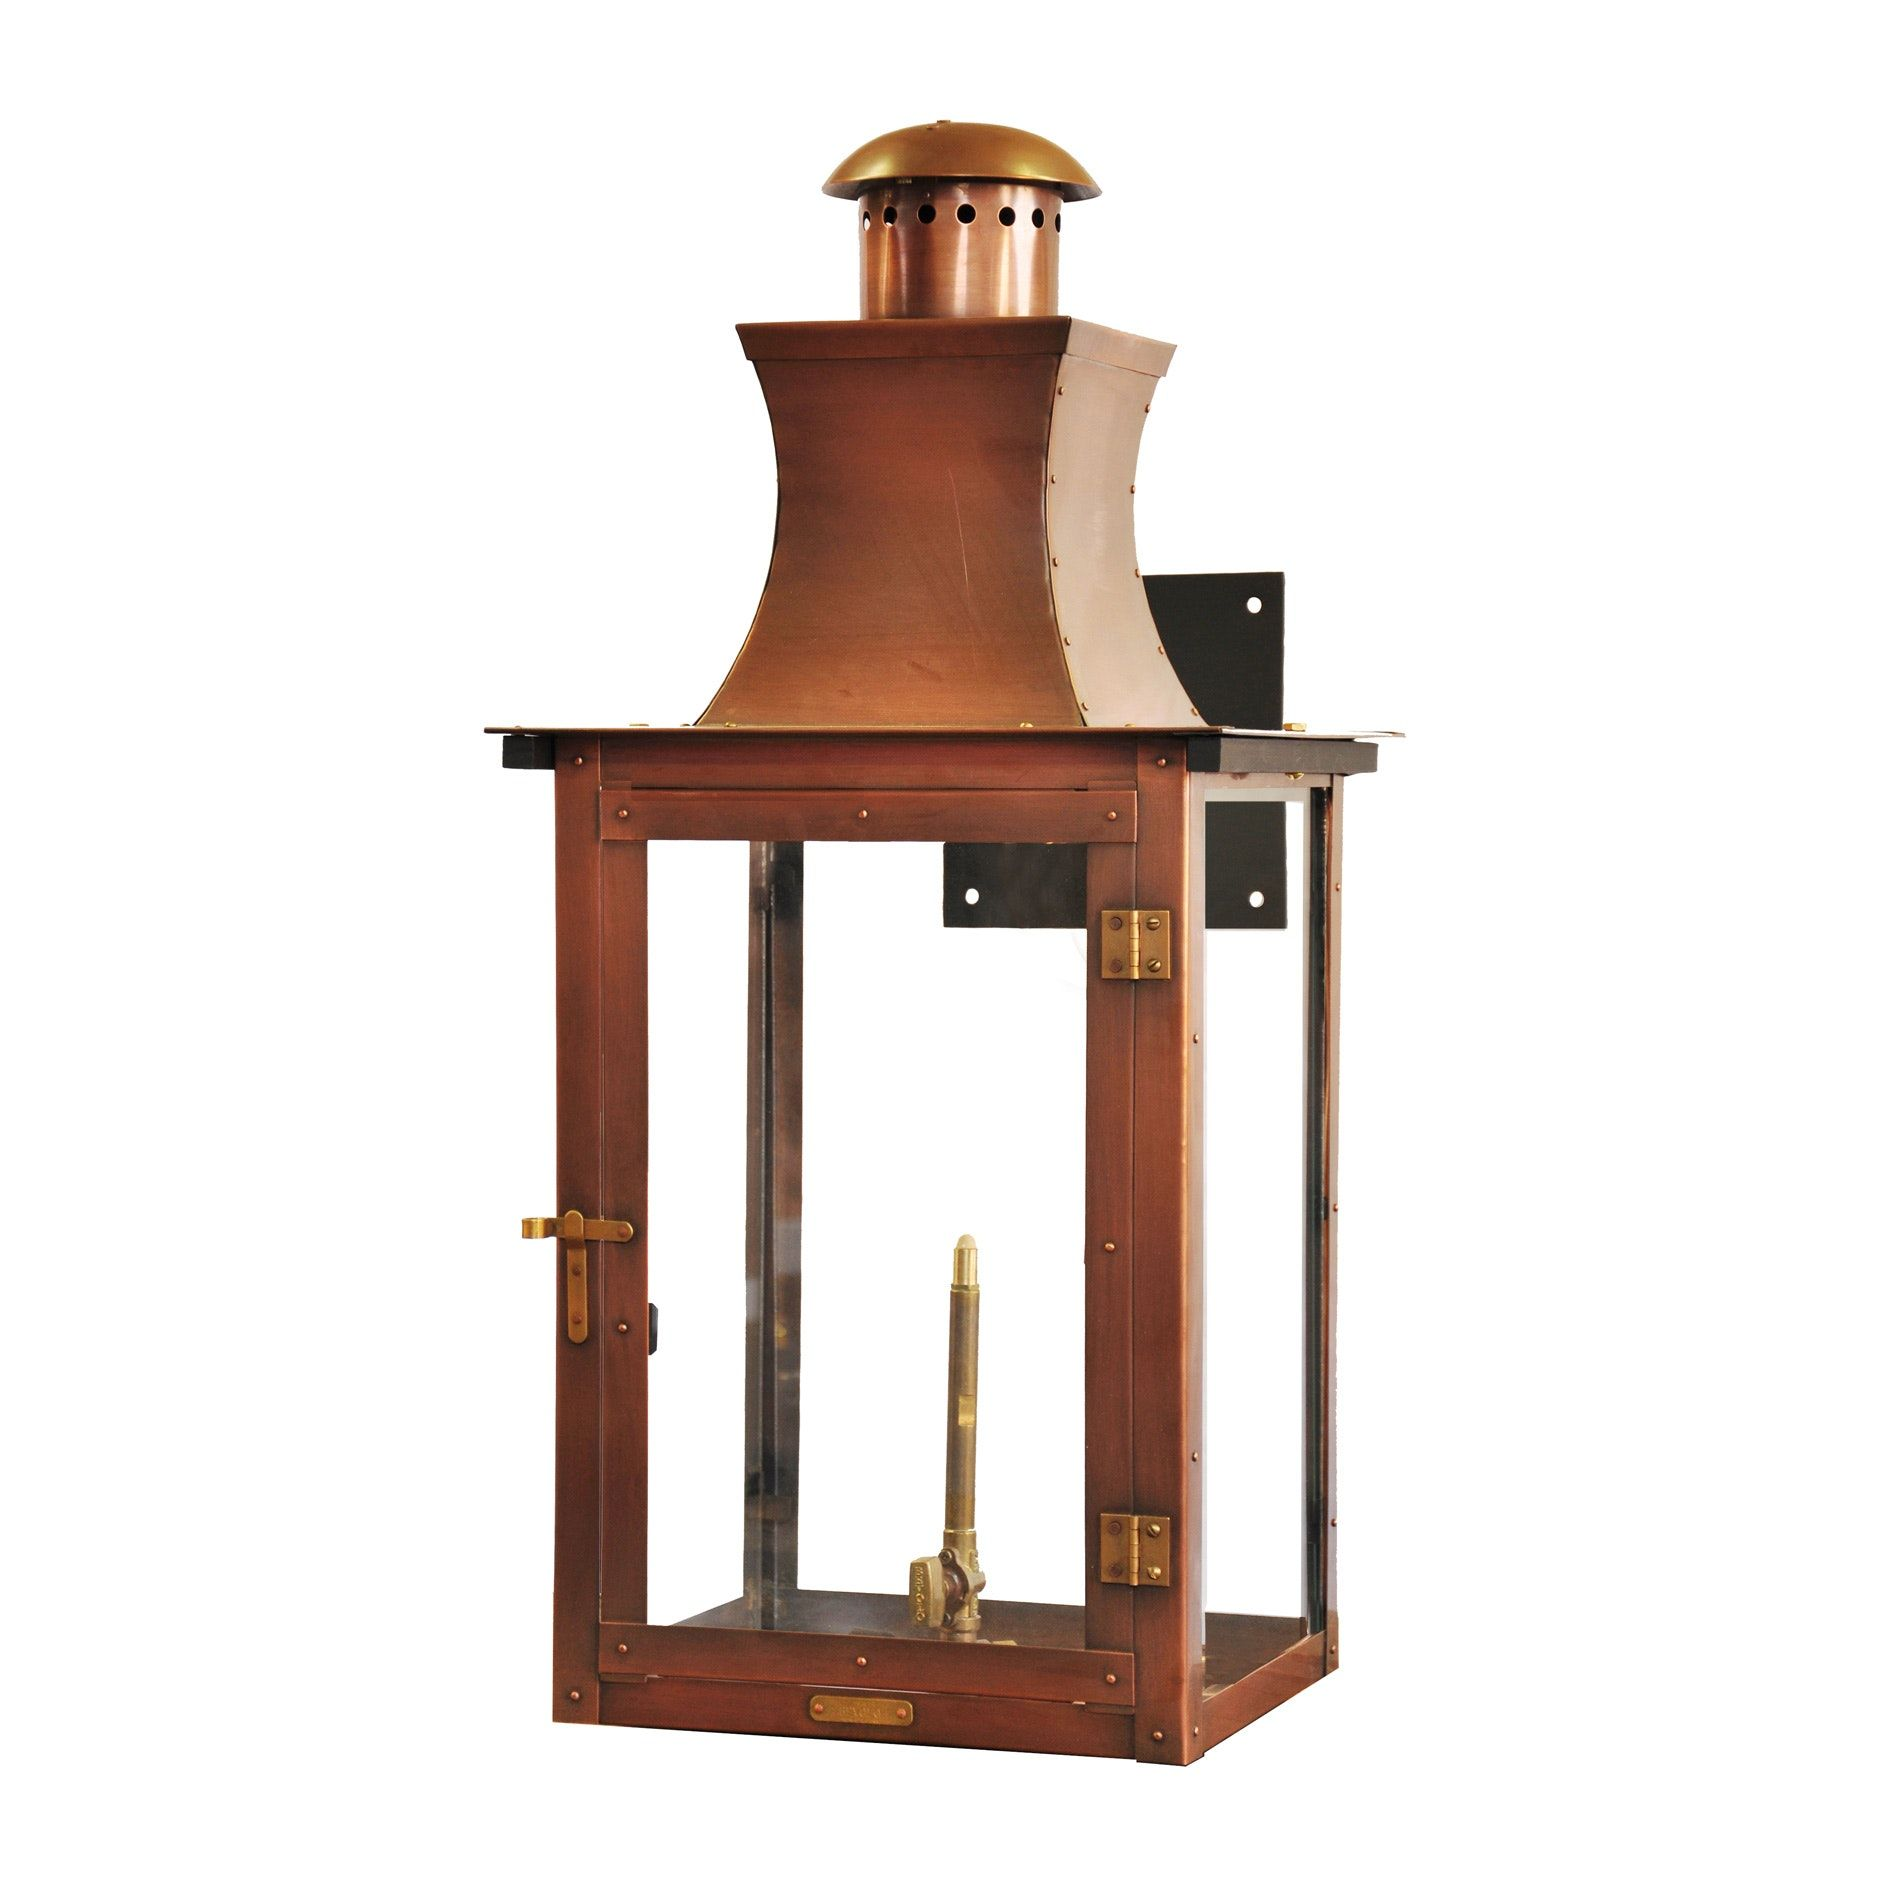 Buy Governor Carriage Lantern On Bracket Mount By Bevolo Gas Electric Lights Made To Order Designer Light Traditional Wall Lighting Copper Lighting Lights